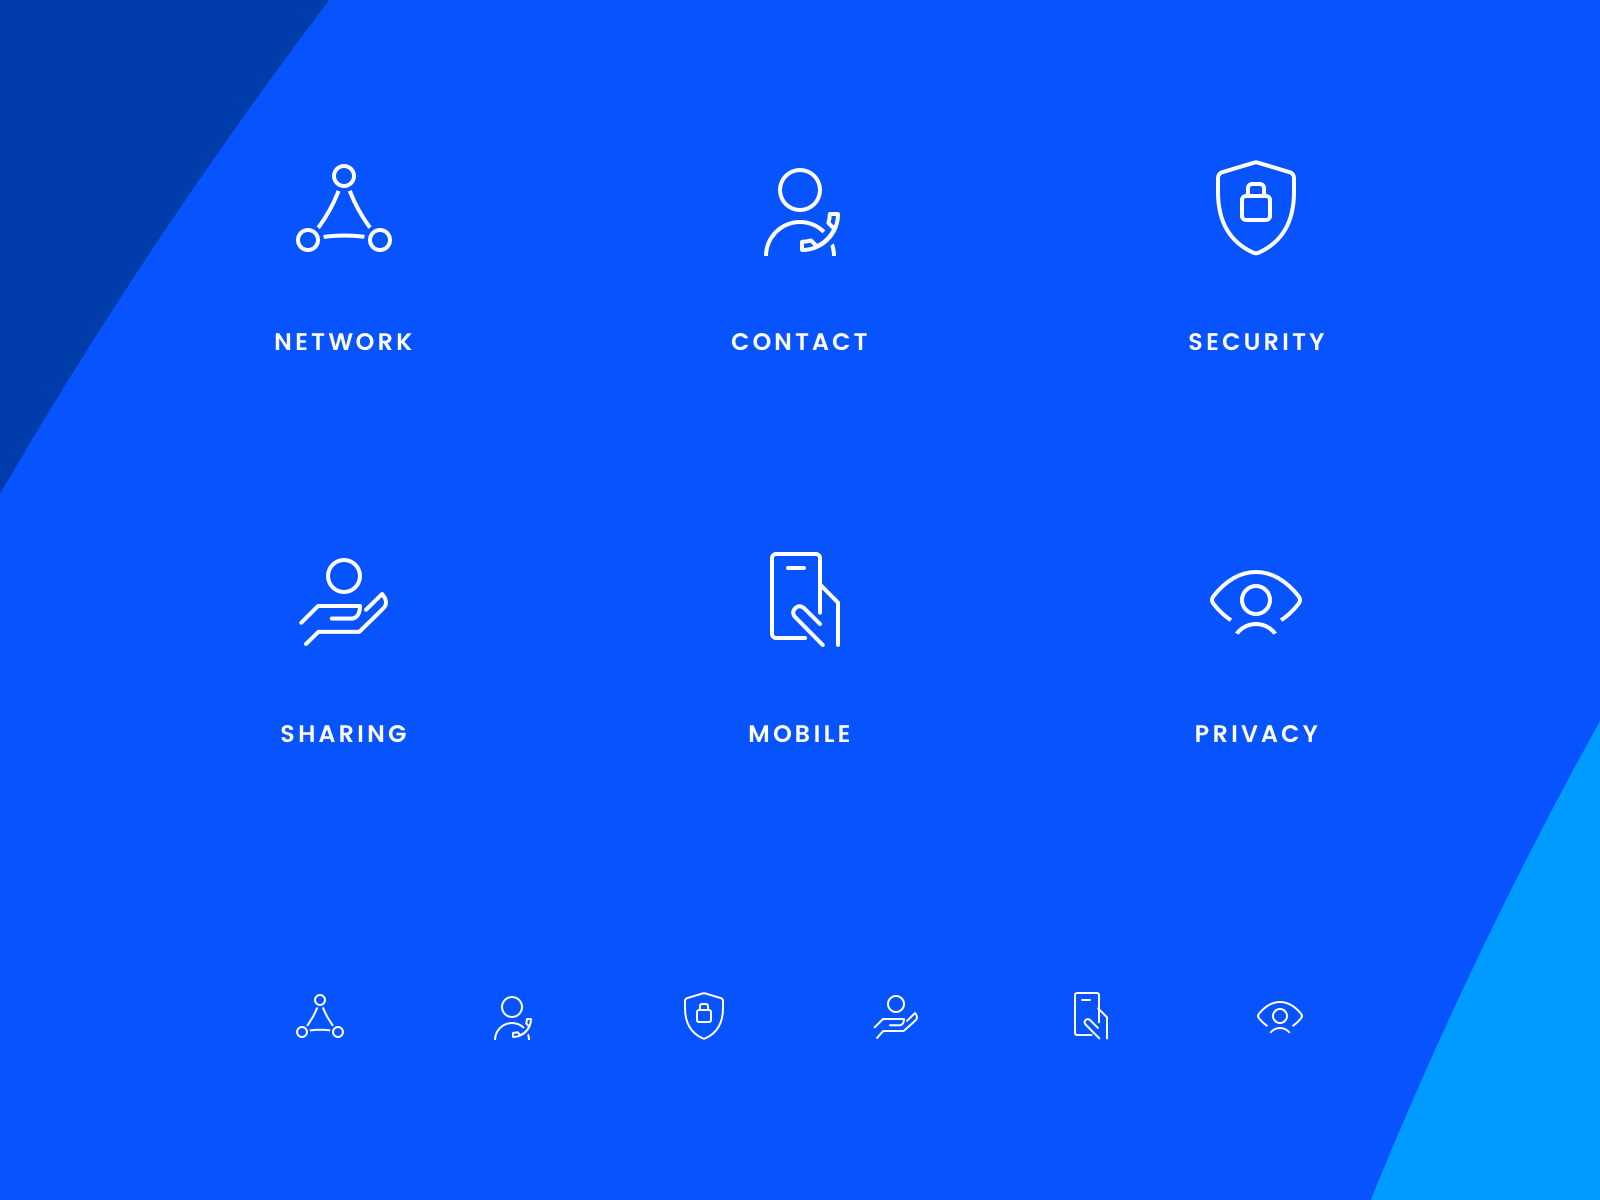 Dribbble artboard.png by Alexander Haase 🎖 App icon